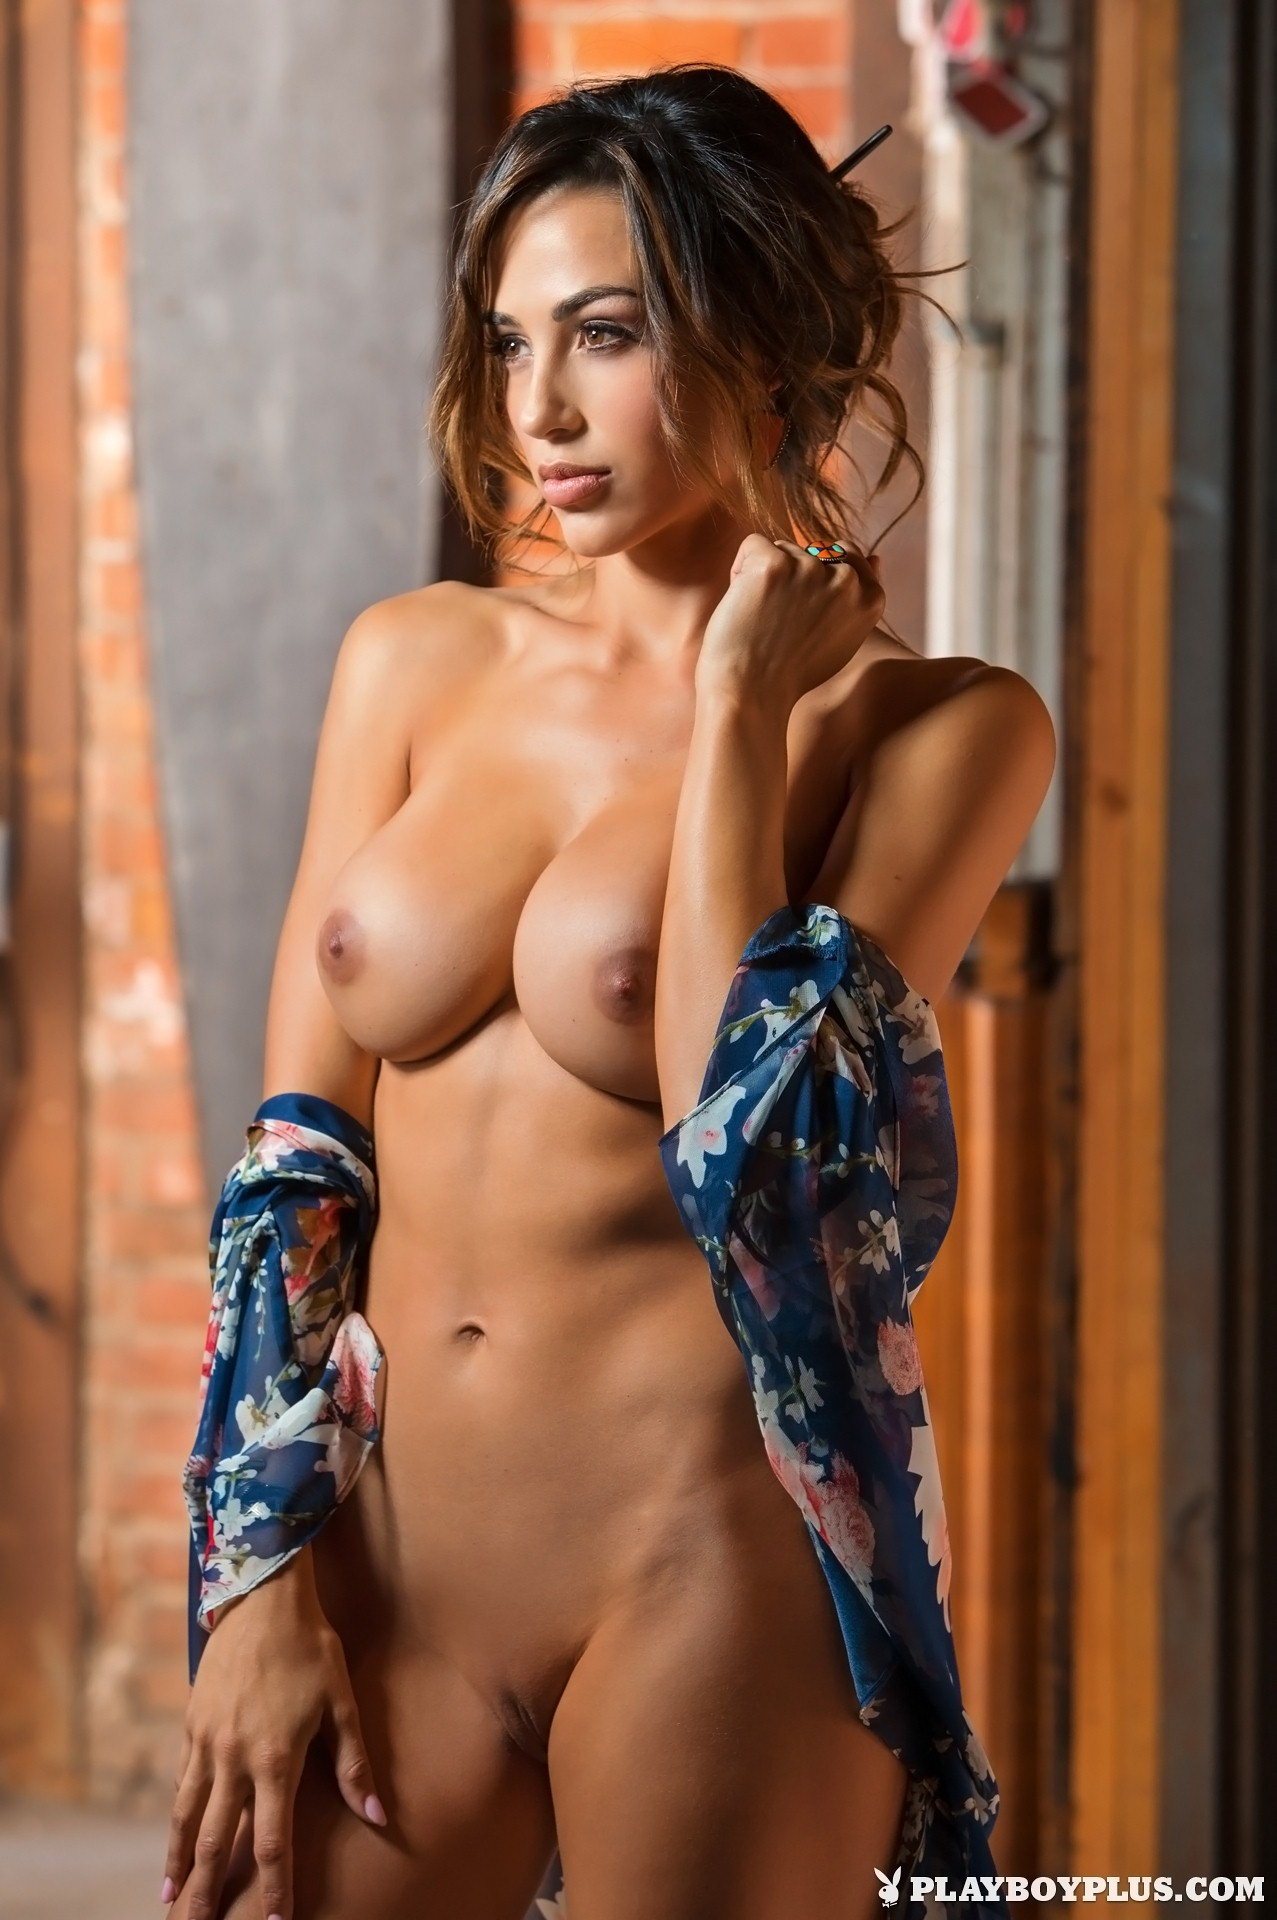 ana cheri nude photos